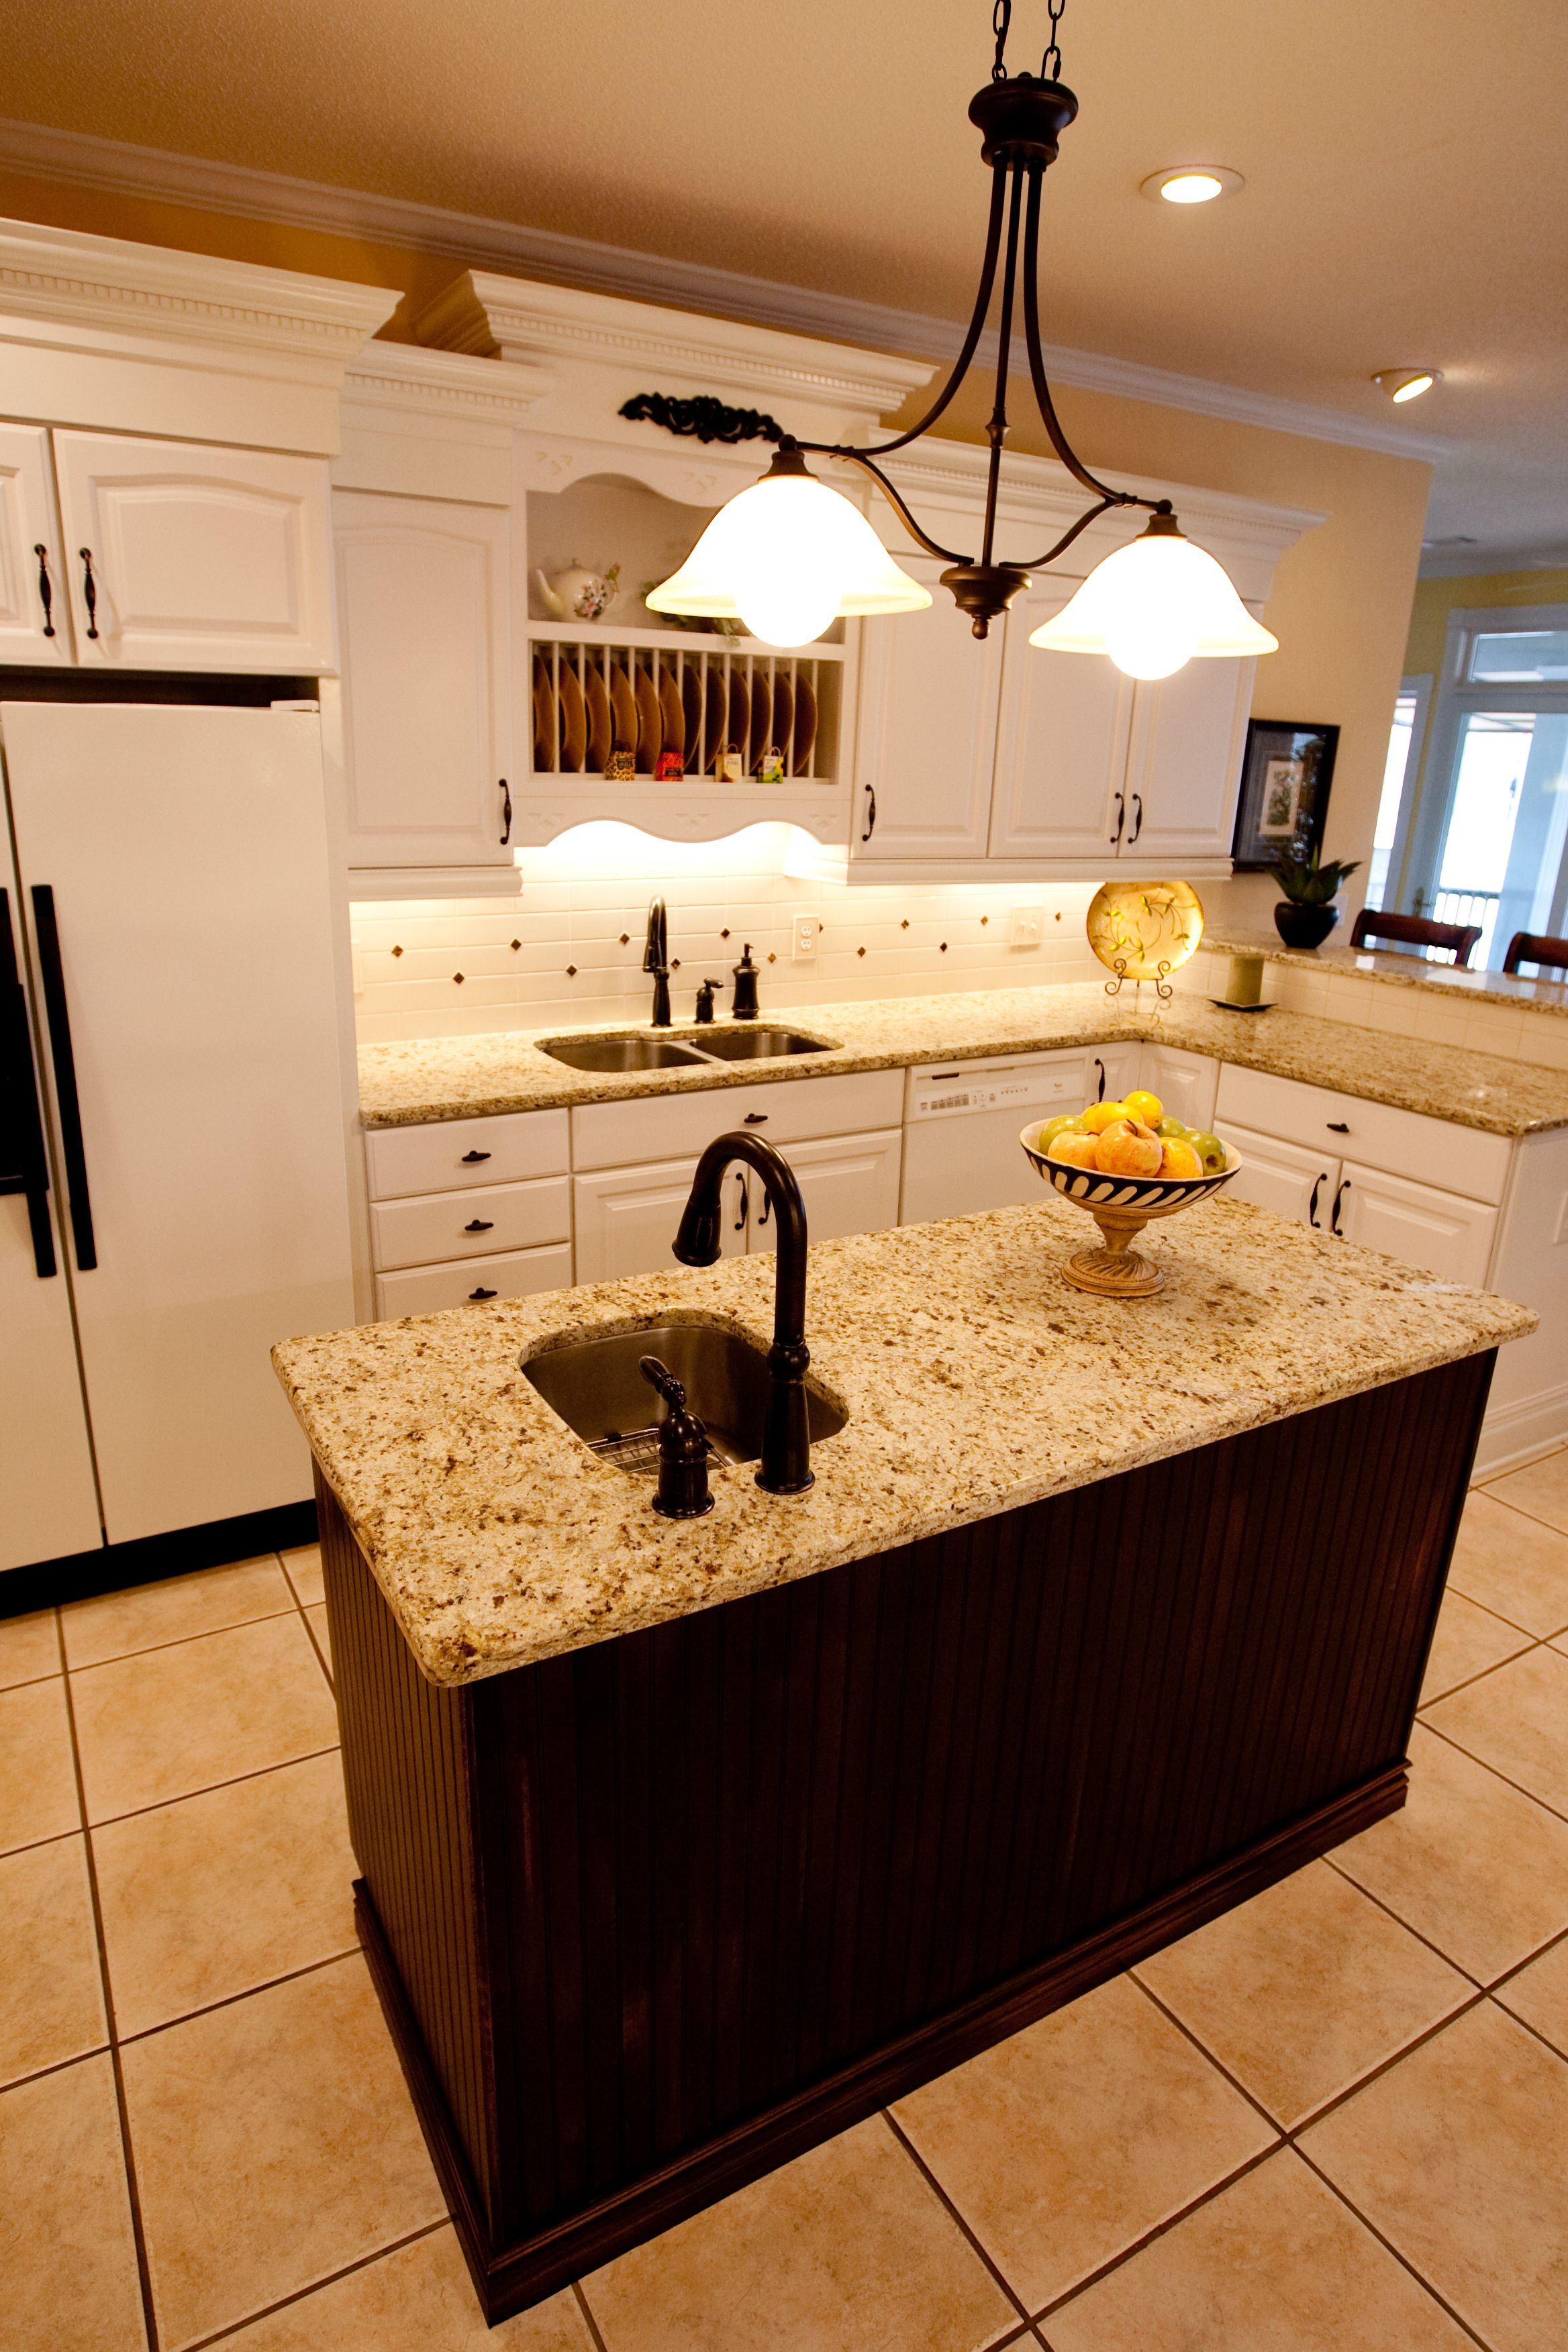 What Is A Kitchen Island With Pictures: Kitchens With Sink In Island - Bing Images